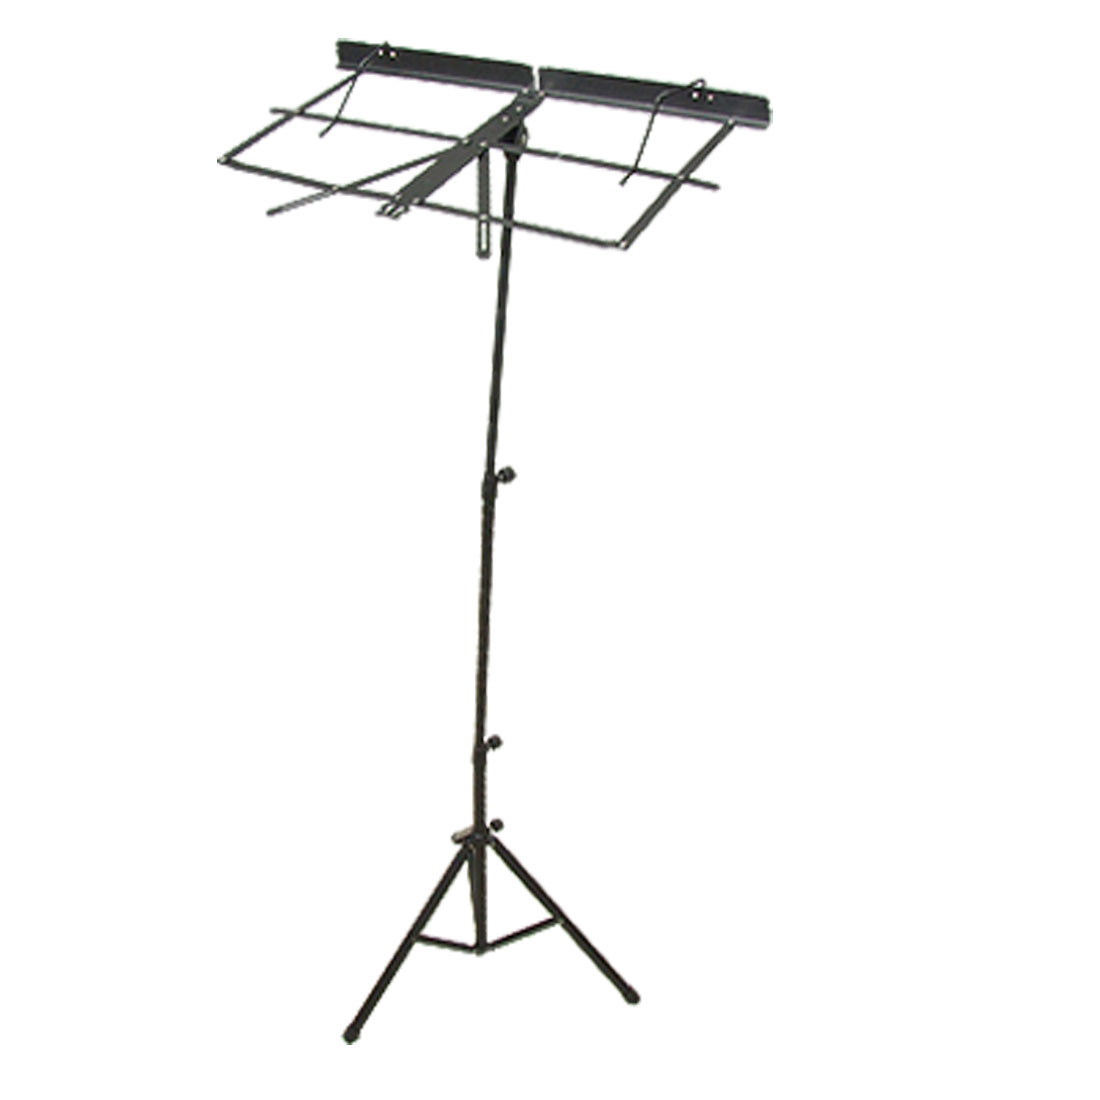 Foldable Musician Gear Adjustable Height Conductor Music Stand